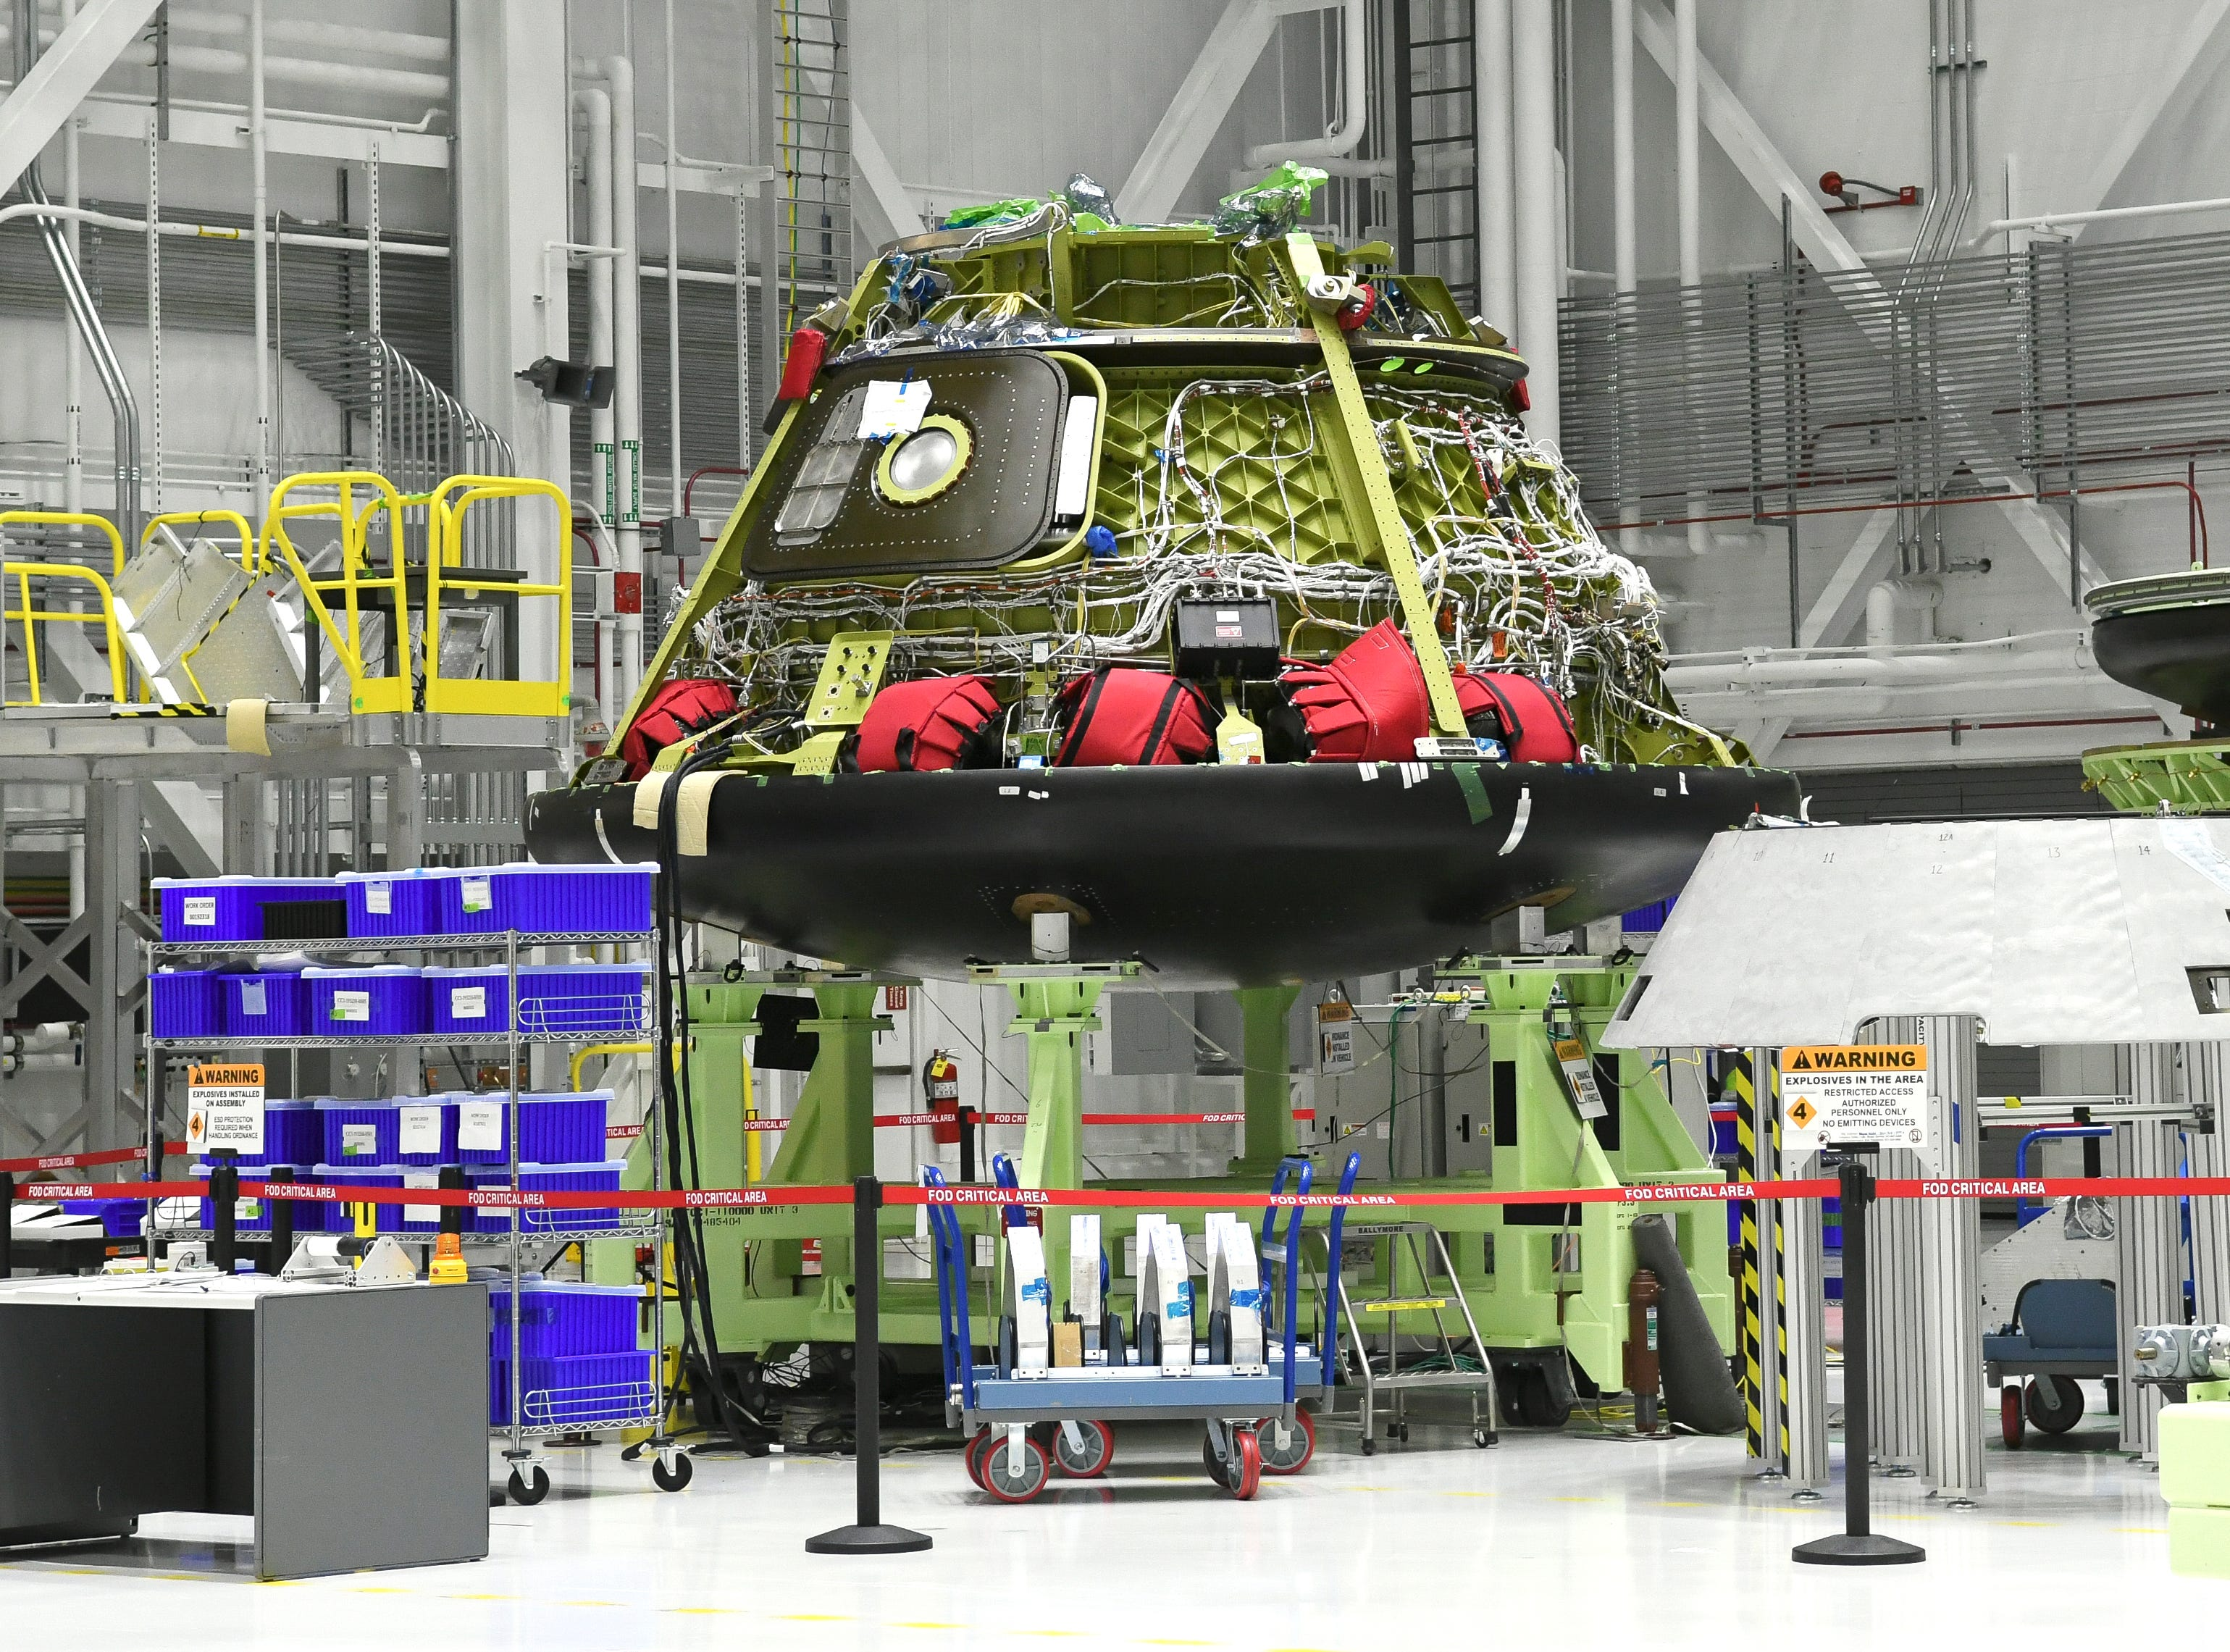 A Starliner test vehicle sits in the Boeing  manufacturing facility at Kennedy Space Center. This one was used for pad abort tests.